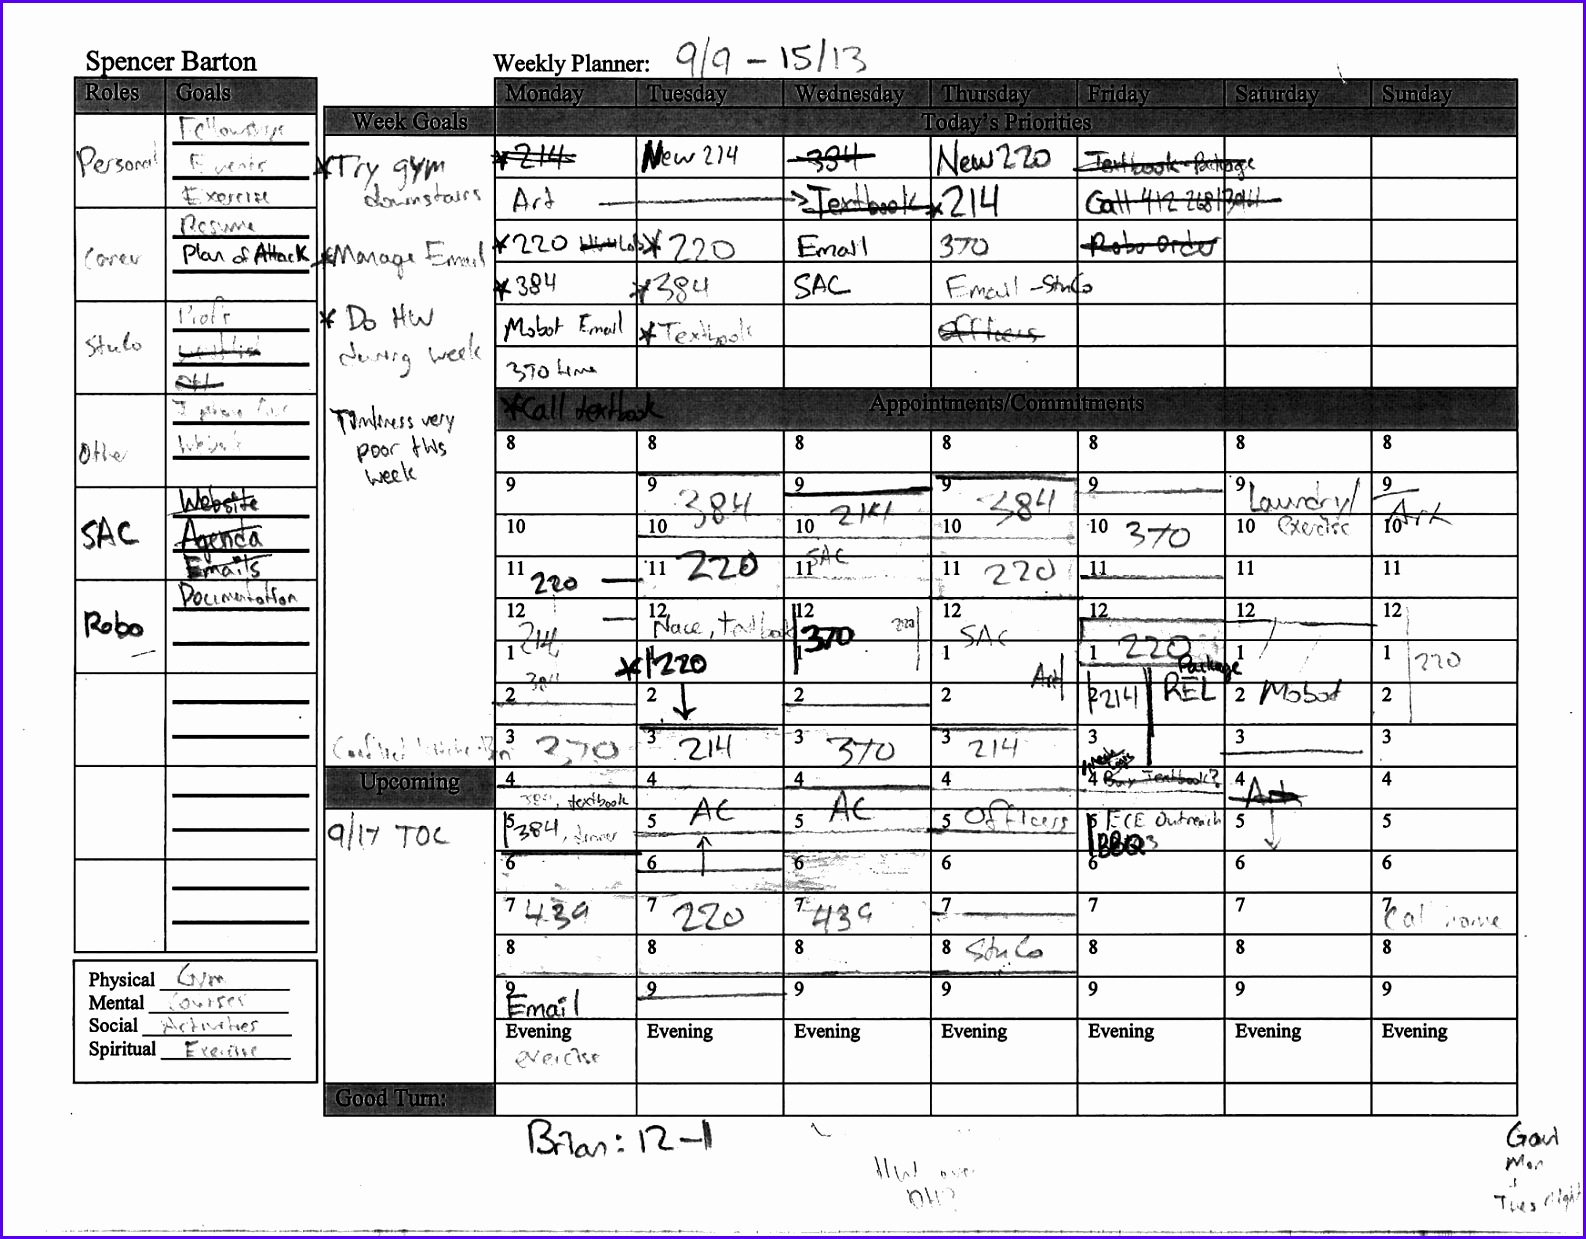 Sample Week Planner Template Excel Bvibk Fresh Stephen Covey Weekly Planner Template Excel 17431347